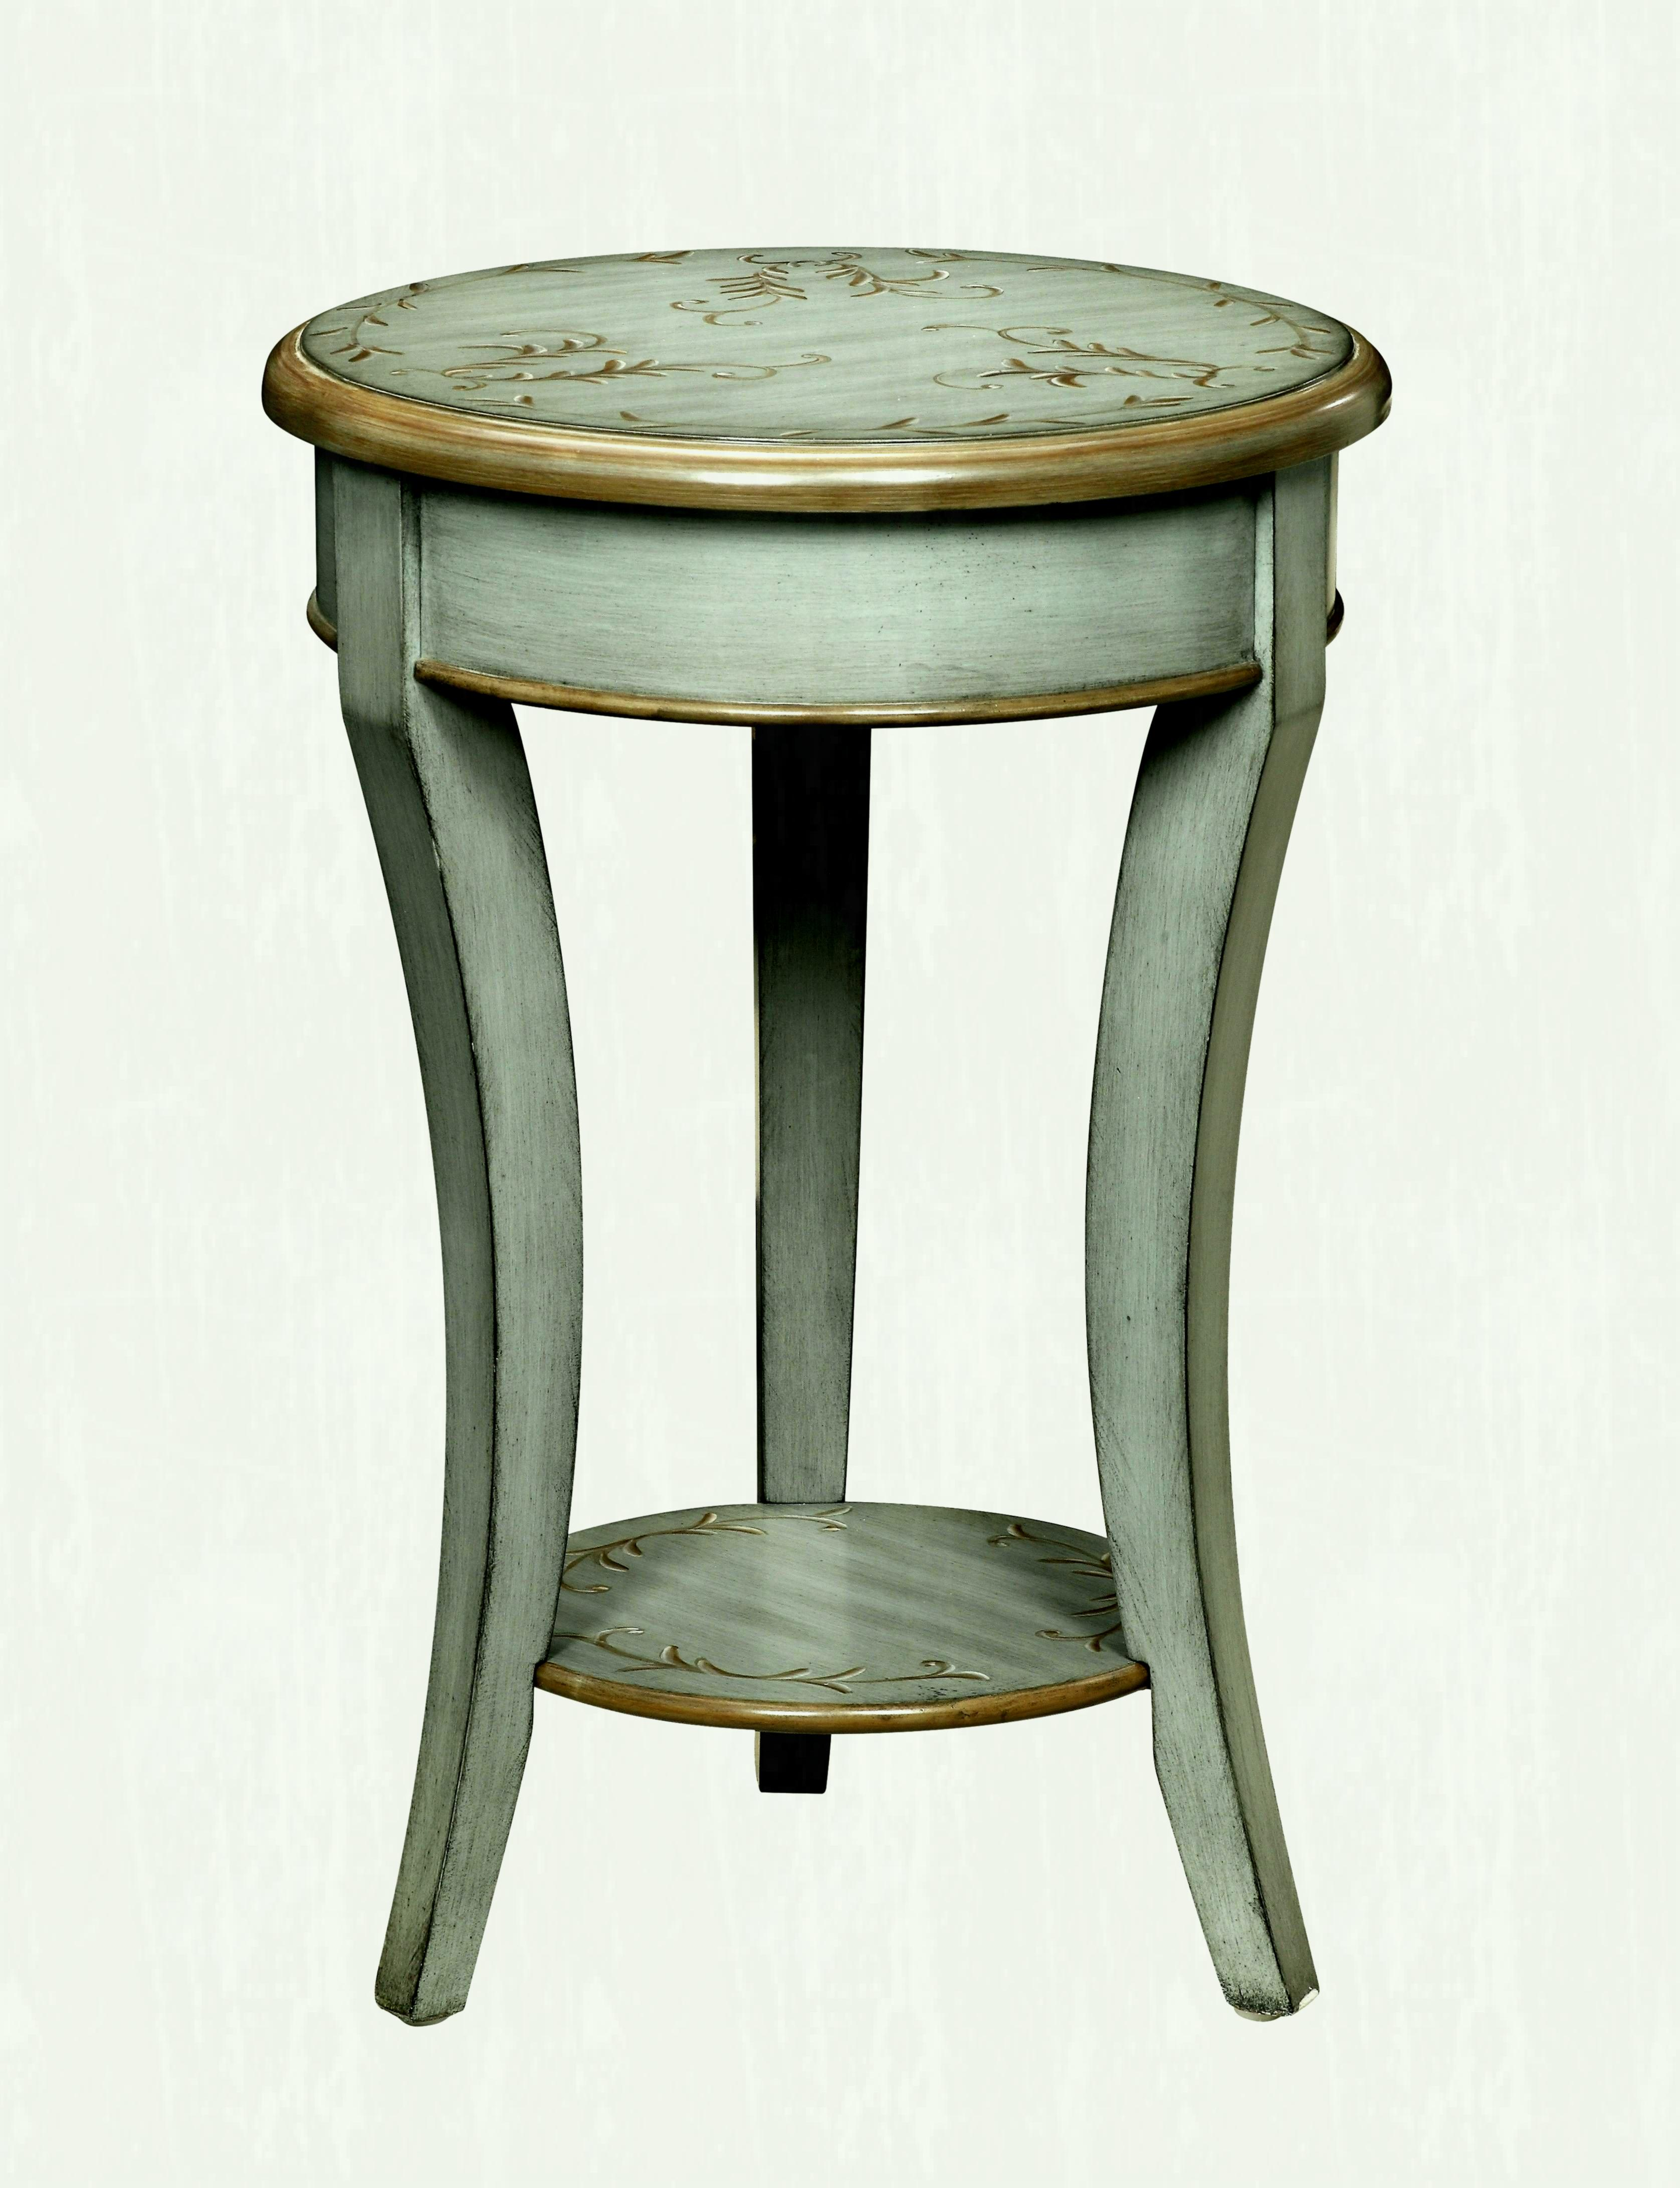 small wood end table rustic round accent for the bedroom lovely tables blue white porcelain lamp kitchen furniture floor threshold clearance living room sets counter height dining